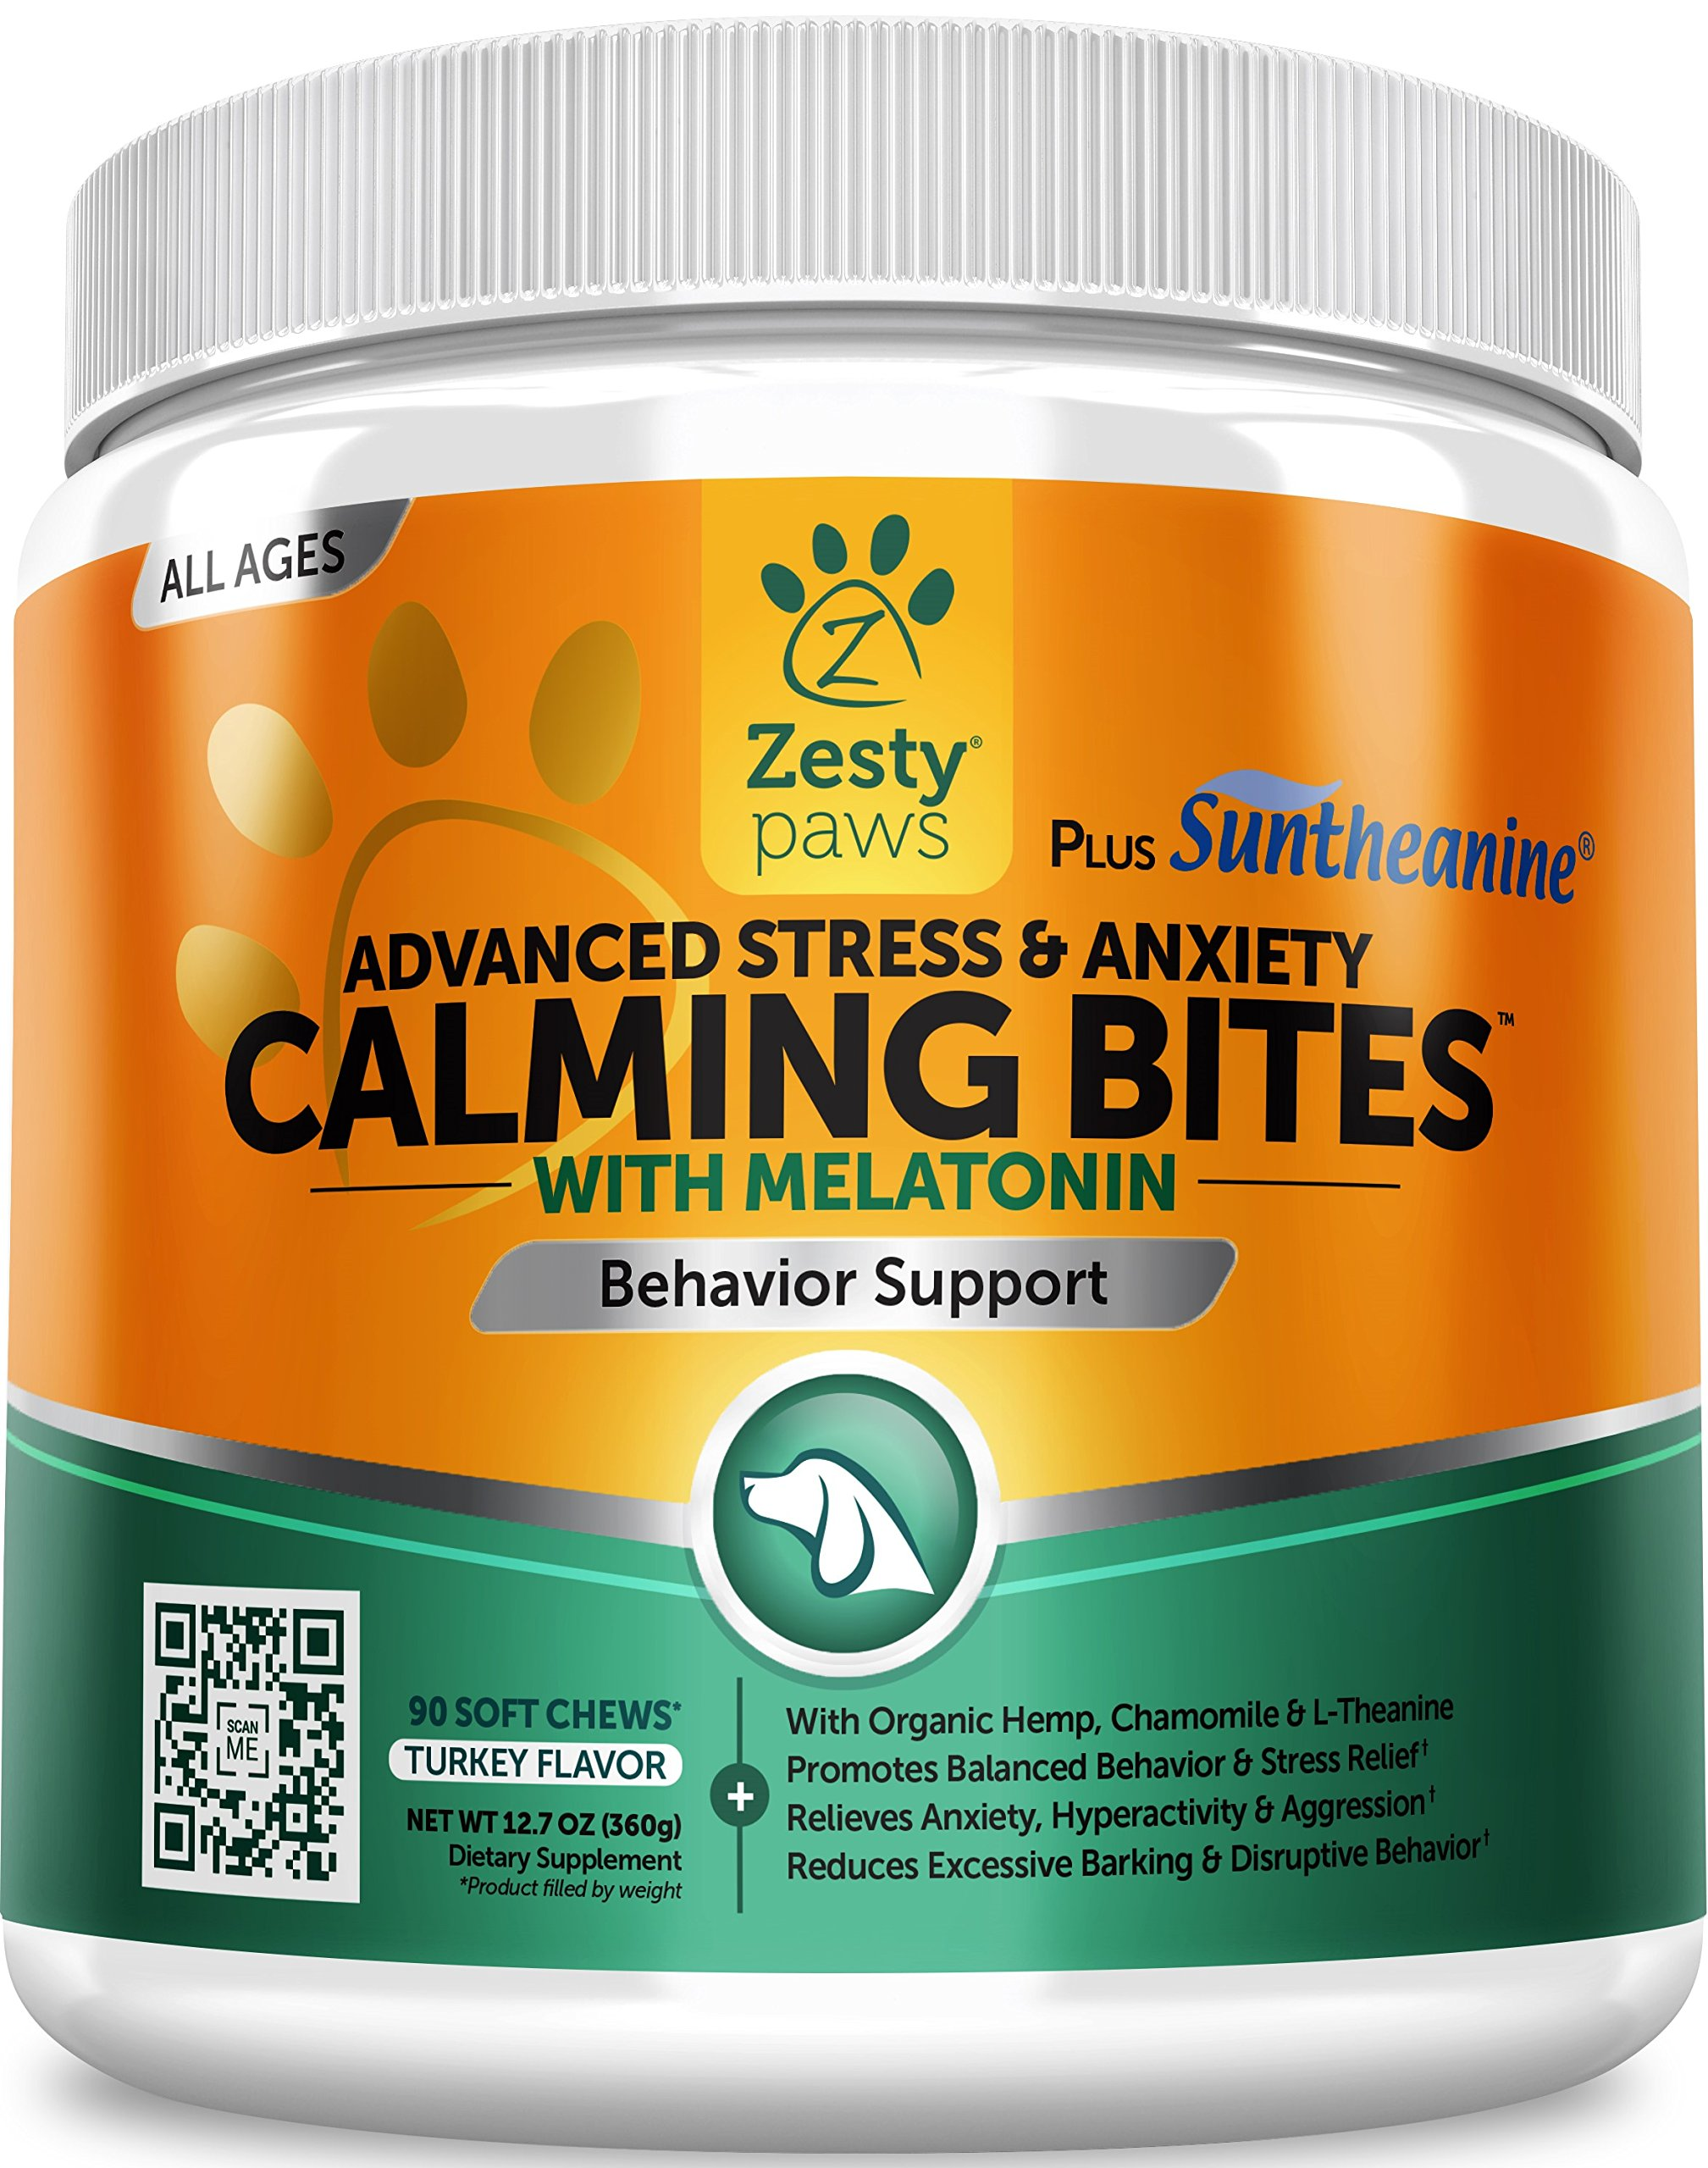 Zesty Paws Advanced Calming Soft Chews for Dogs - with Suntheanine & Melatonin - Anxiety Composure Aid with L Tryptophan for Dog Stress Relief - for Storms + Barking & Chewing - 90 Chew Treats